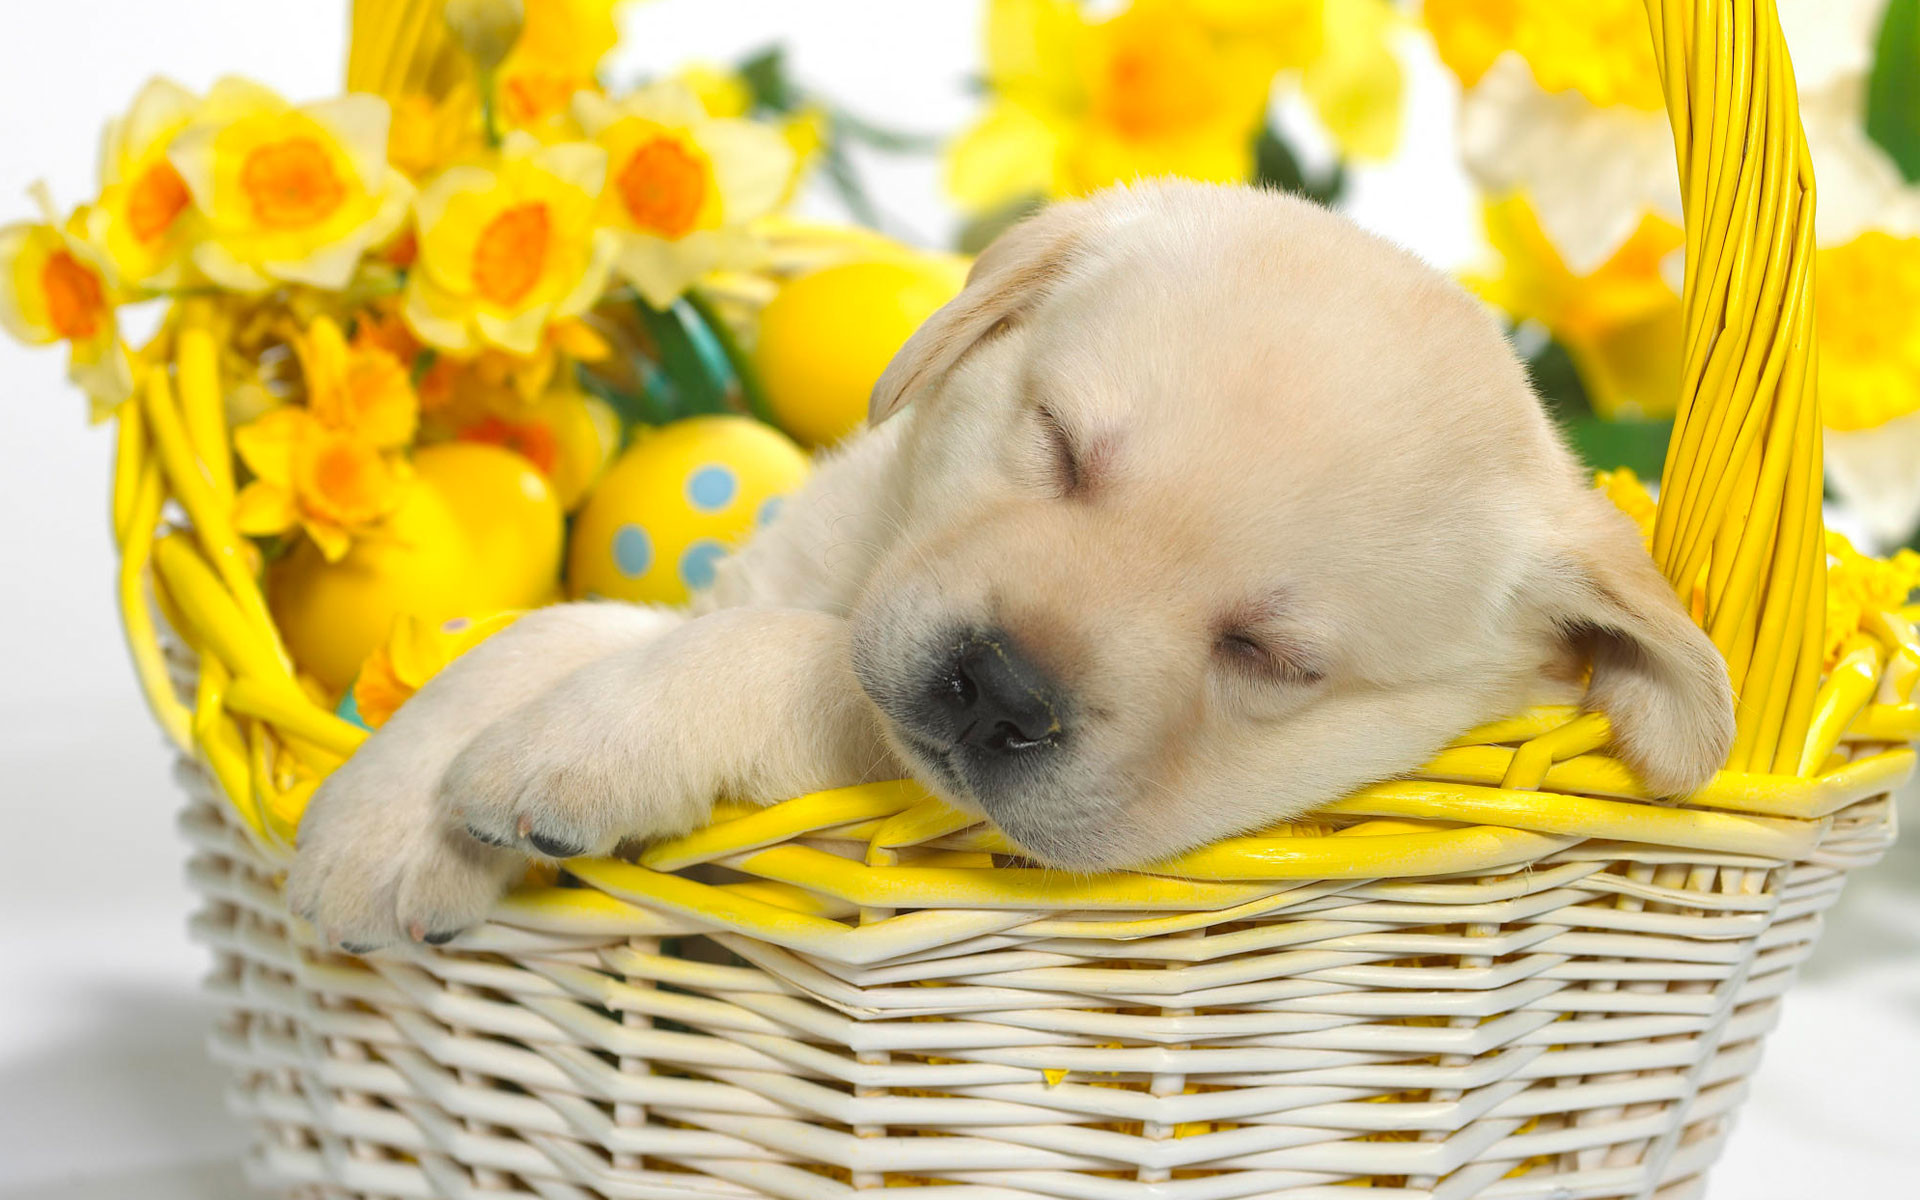 Springtime Snooze Wallpapers   HD Wallpapers